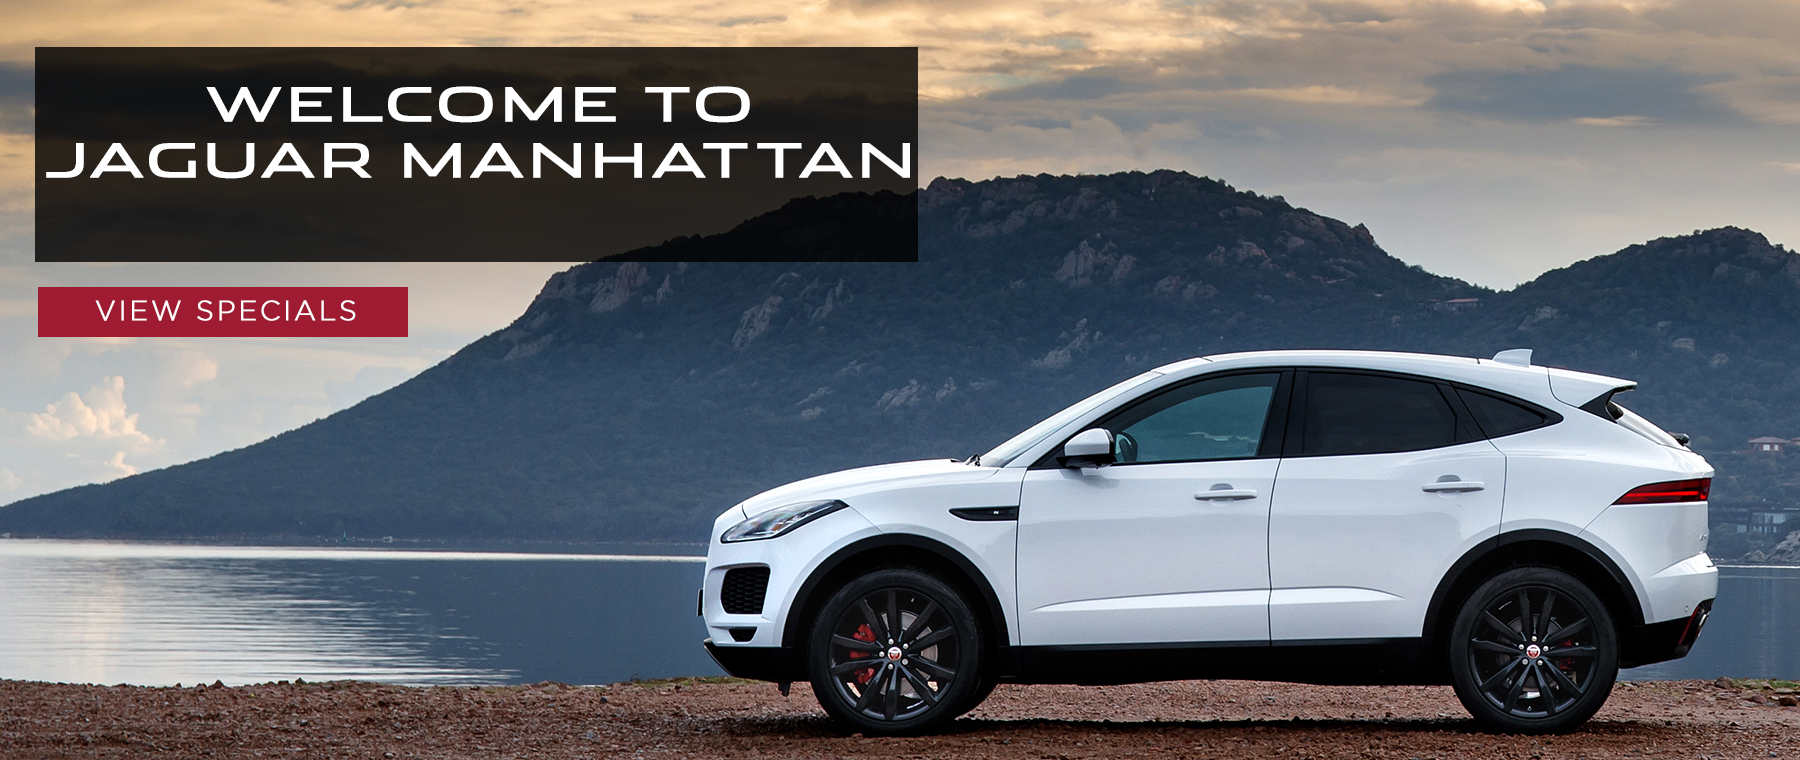 welcome to jaguar manhattan click to view specials white e-pace on mountain and lake background